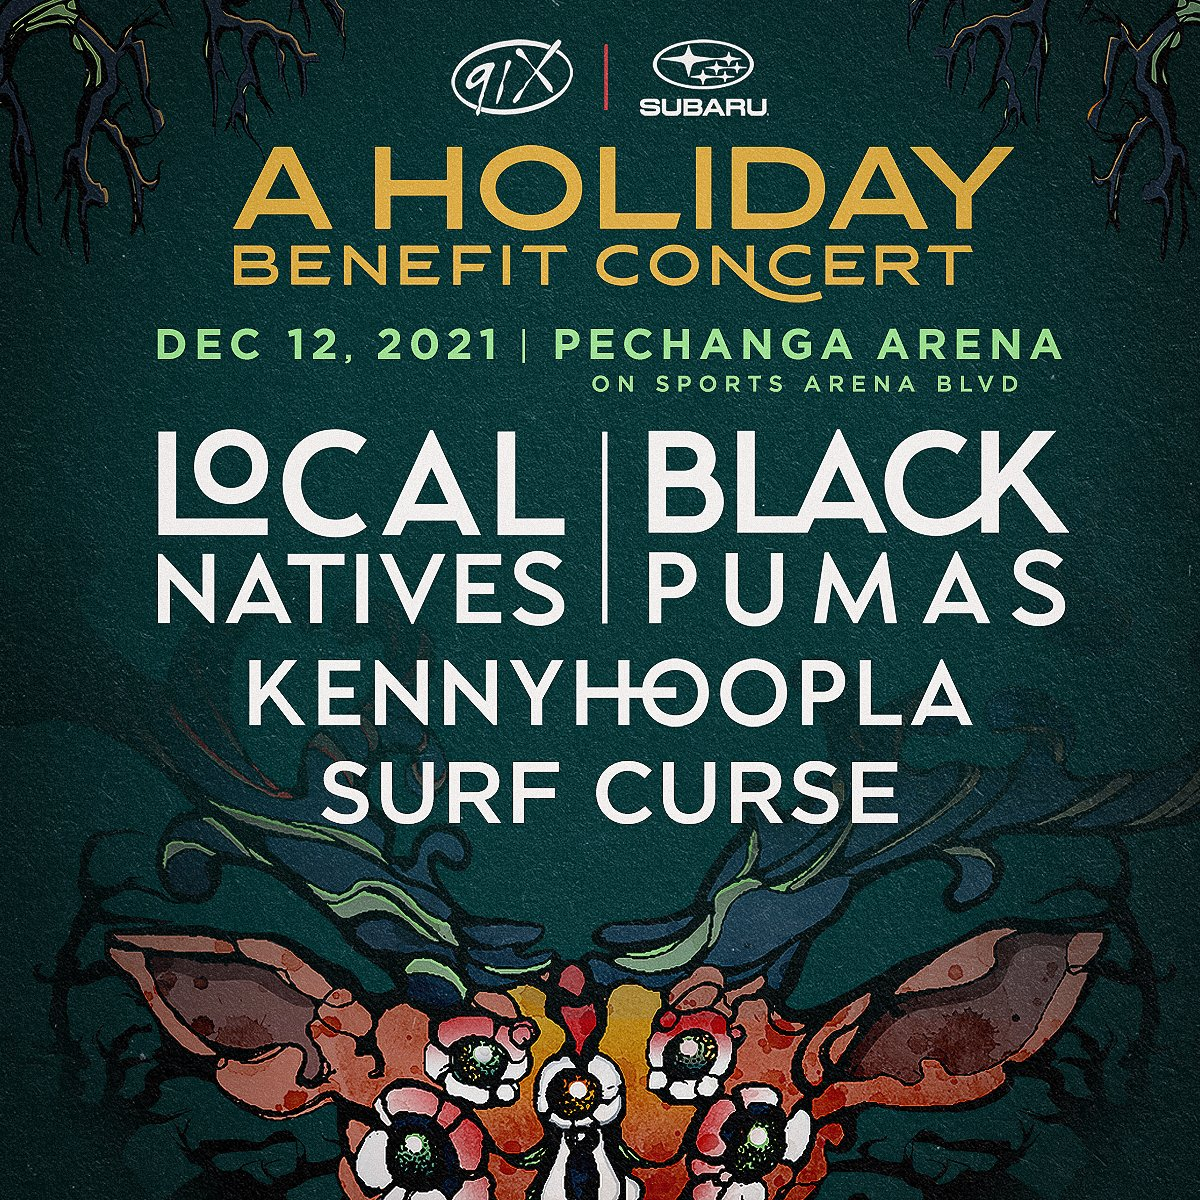 Excited to play the @91X Holiday Benefit Concert in San Diego on December 12th! Head here for more info: https://t.co/4r2M6qJusE 🎁 https://t.co/n3EdmATfka